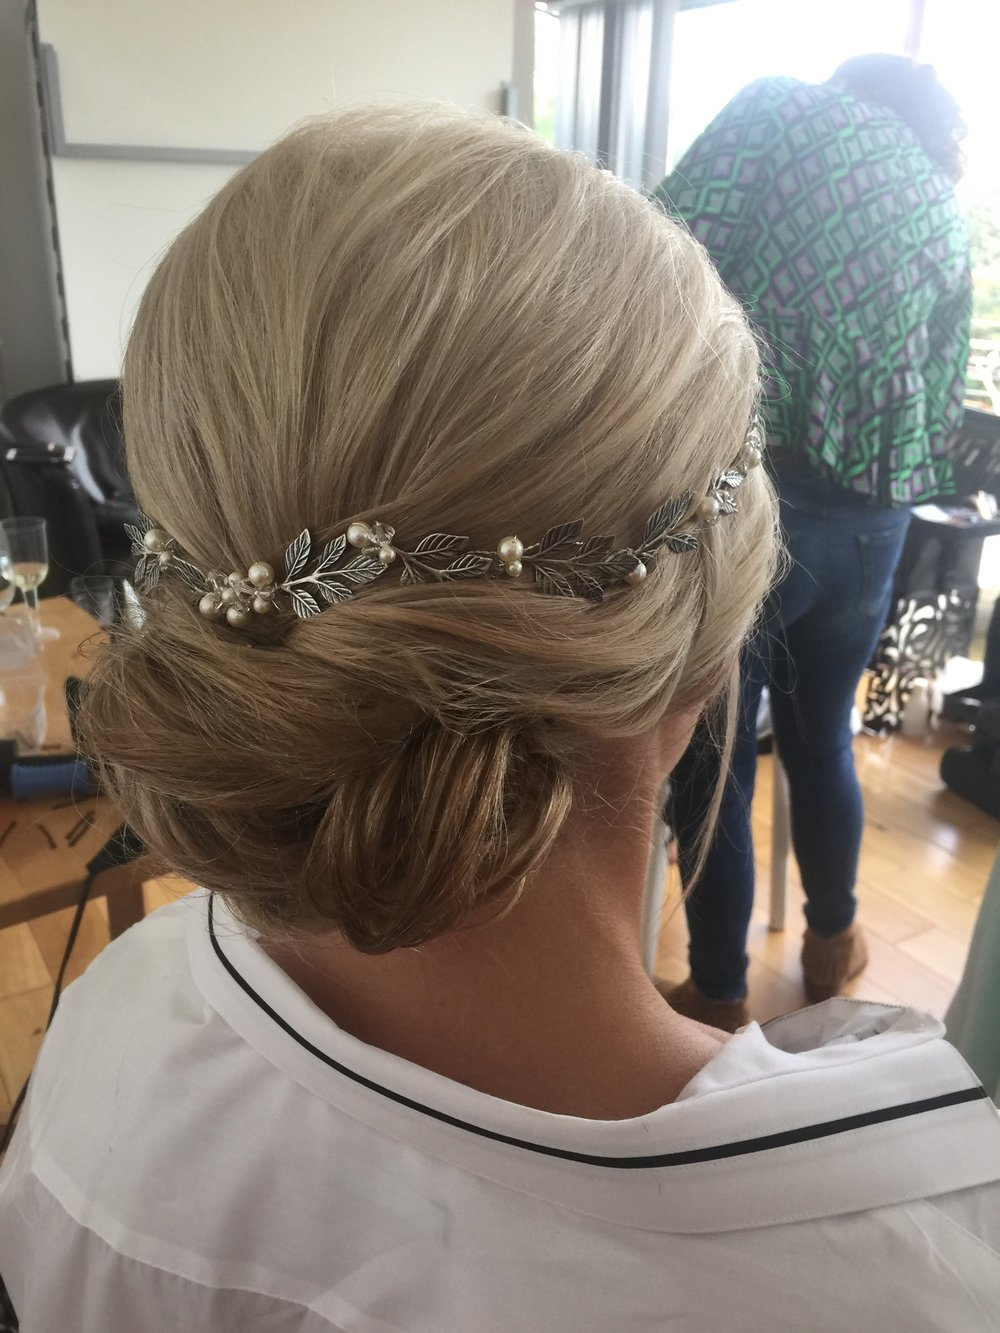 Gorgeous hair up looks even better with the added hair vine